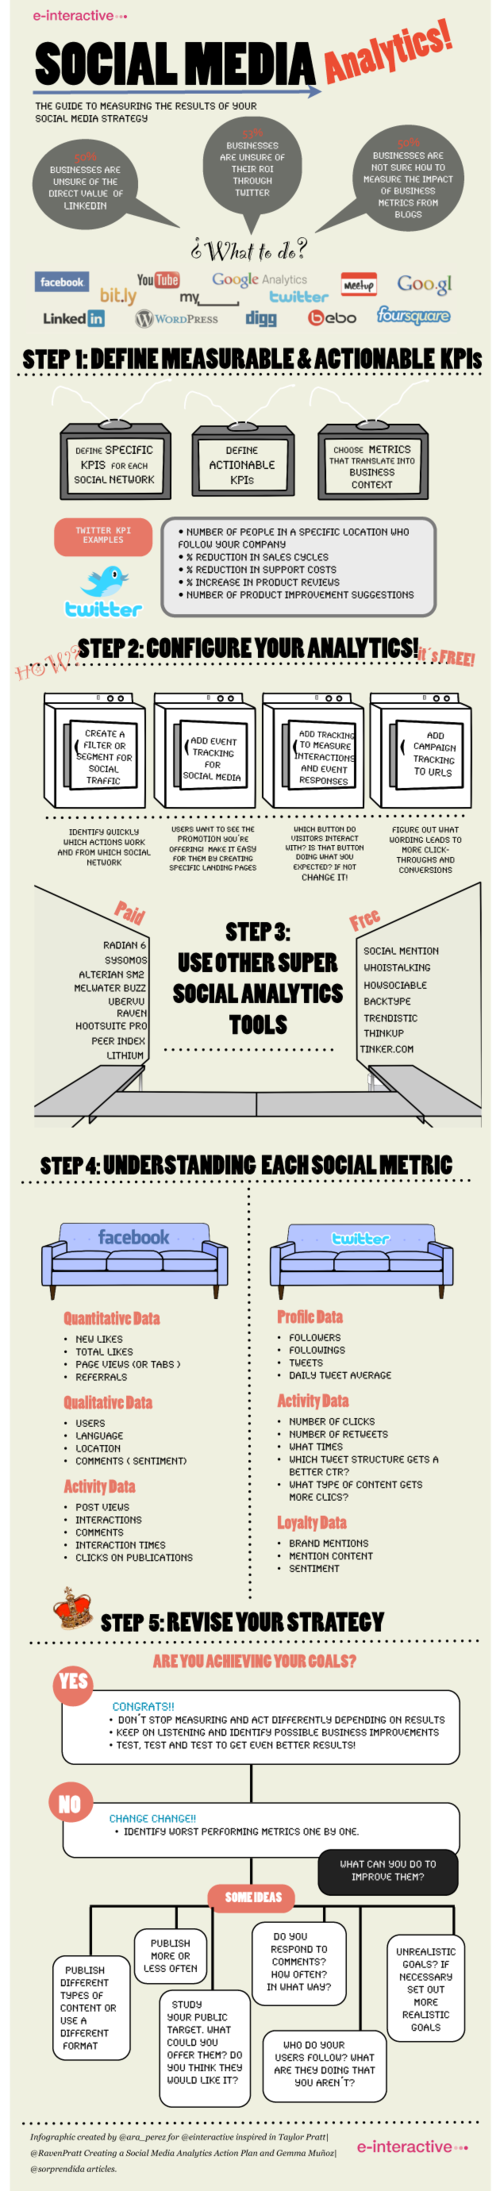 Social Media Analytics [Infographic]